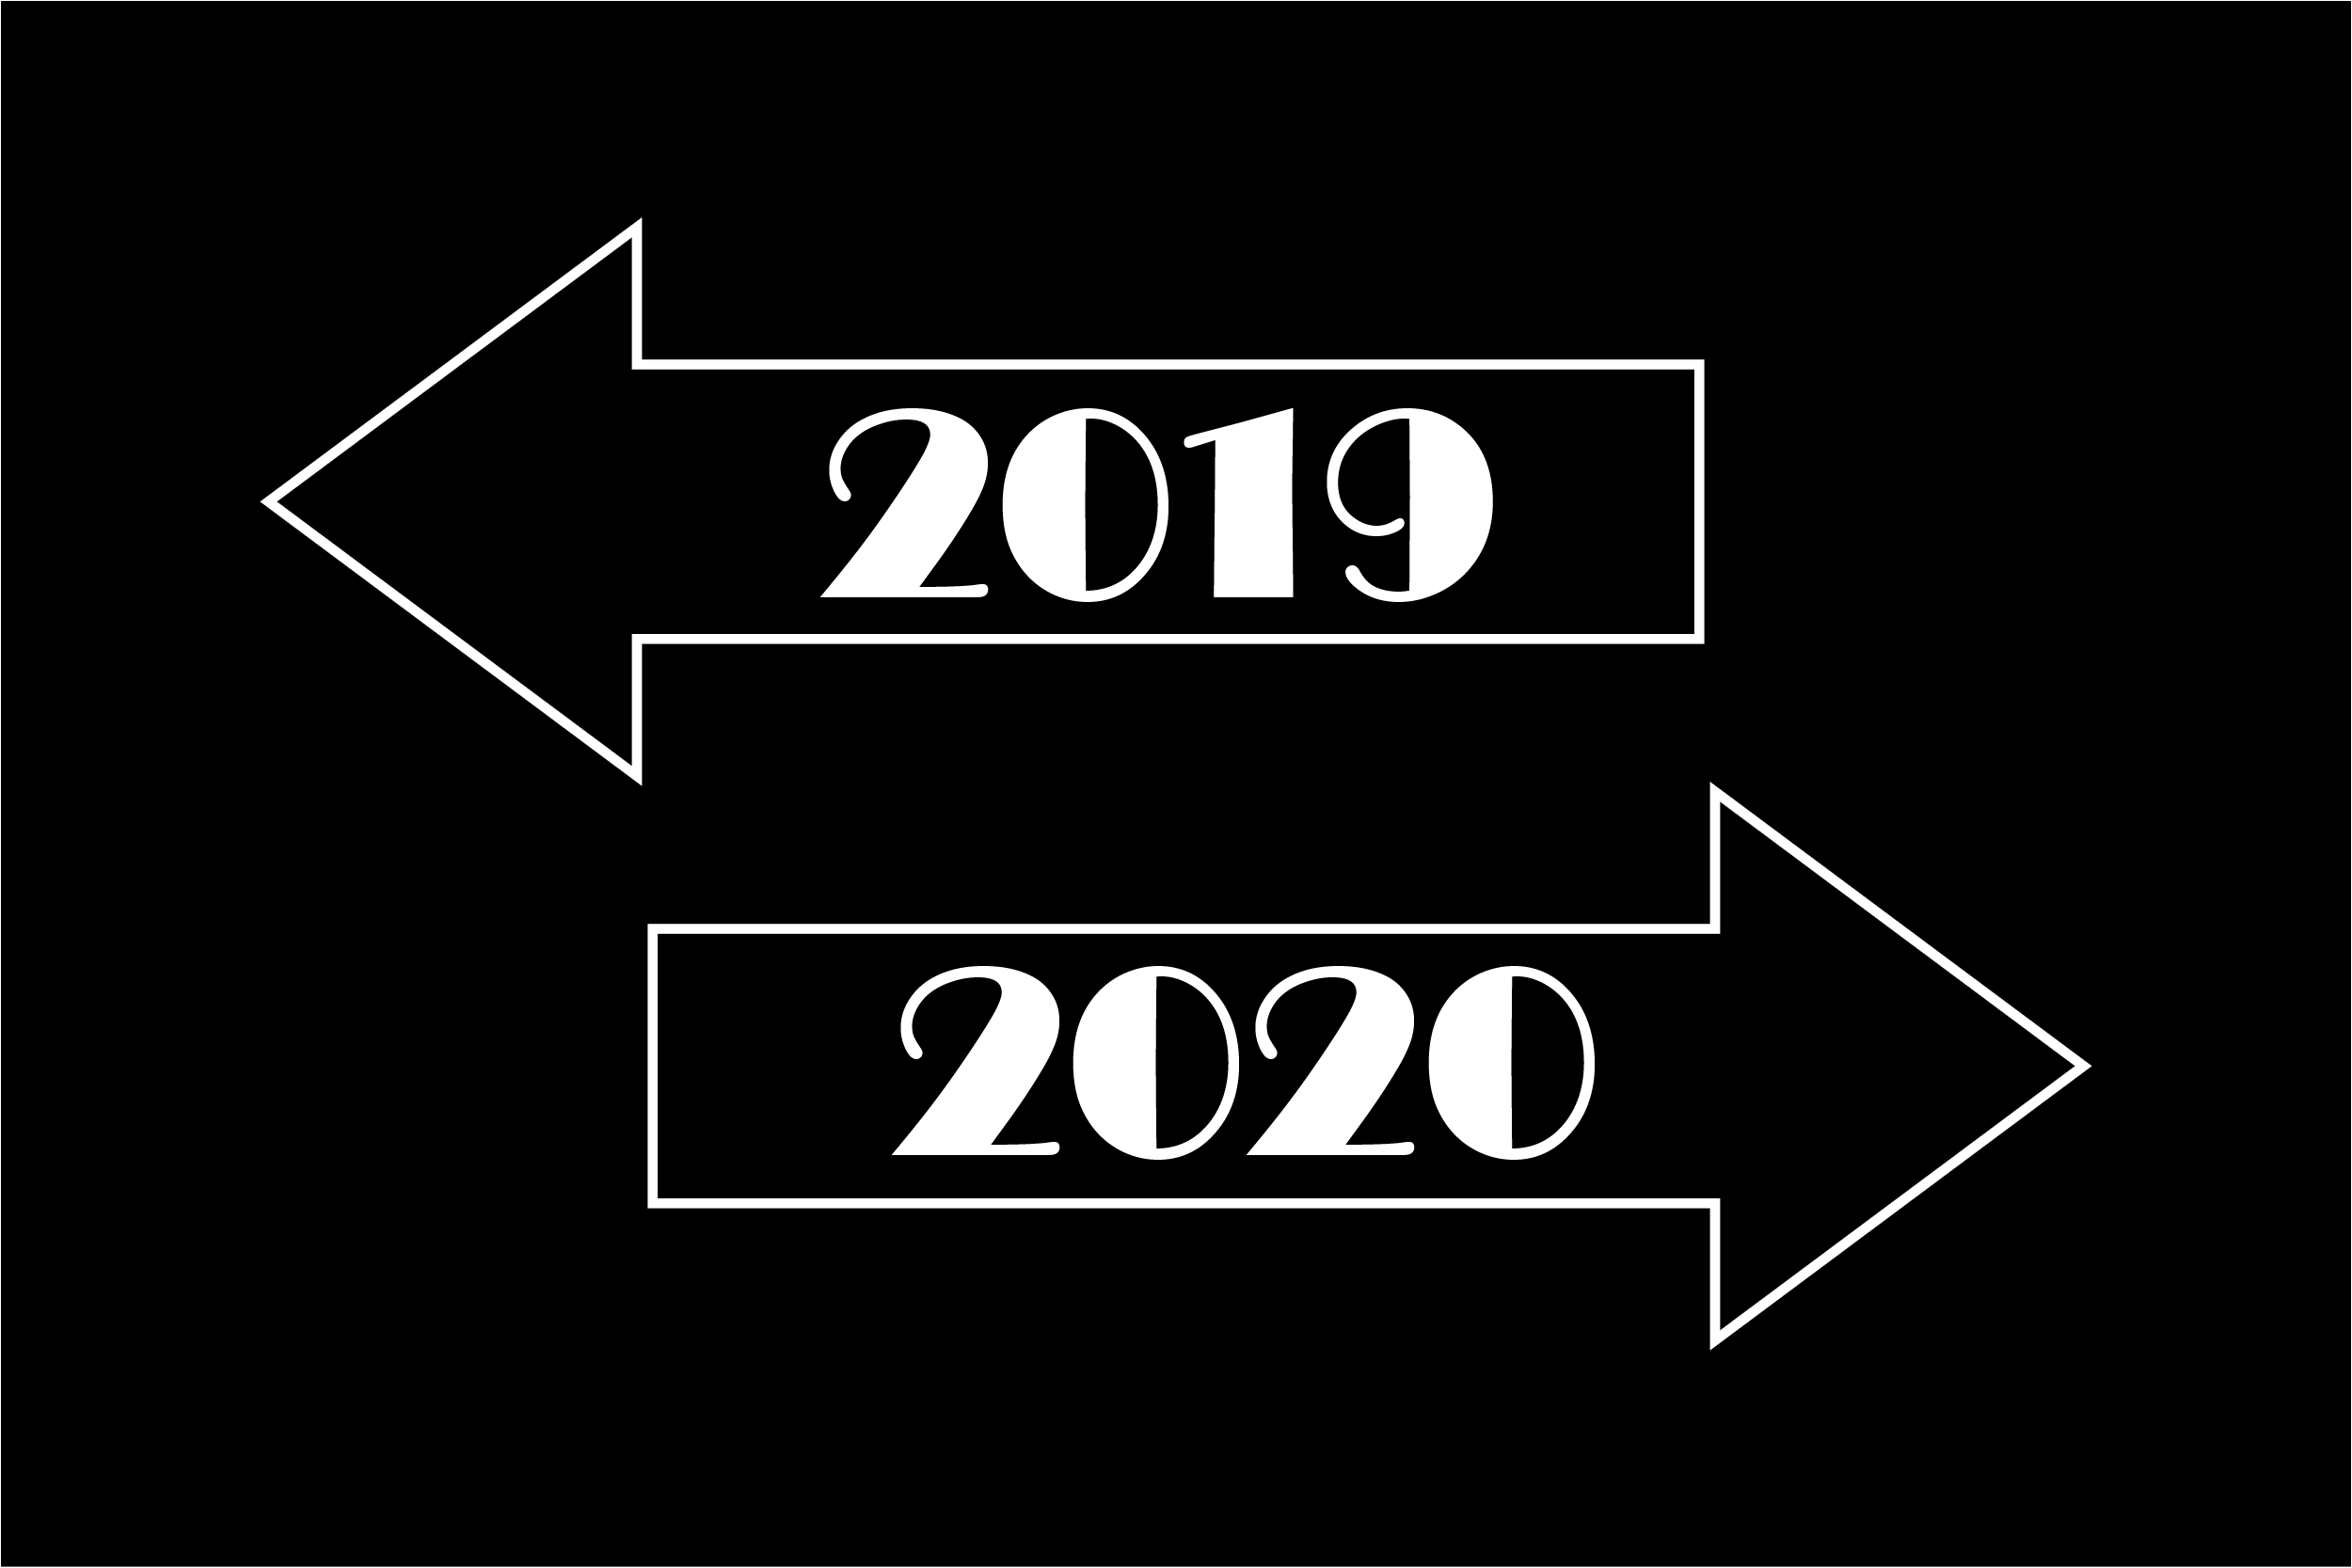 2019 into 2020